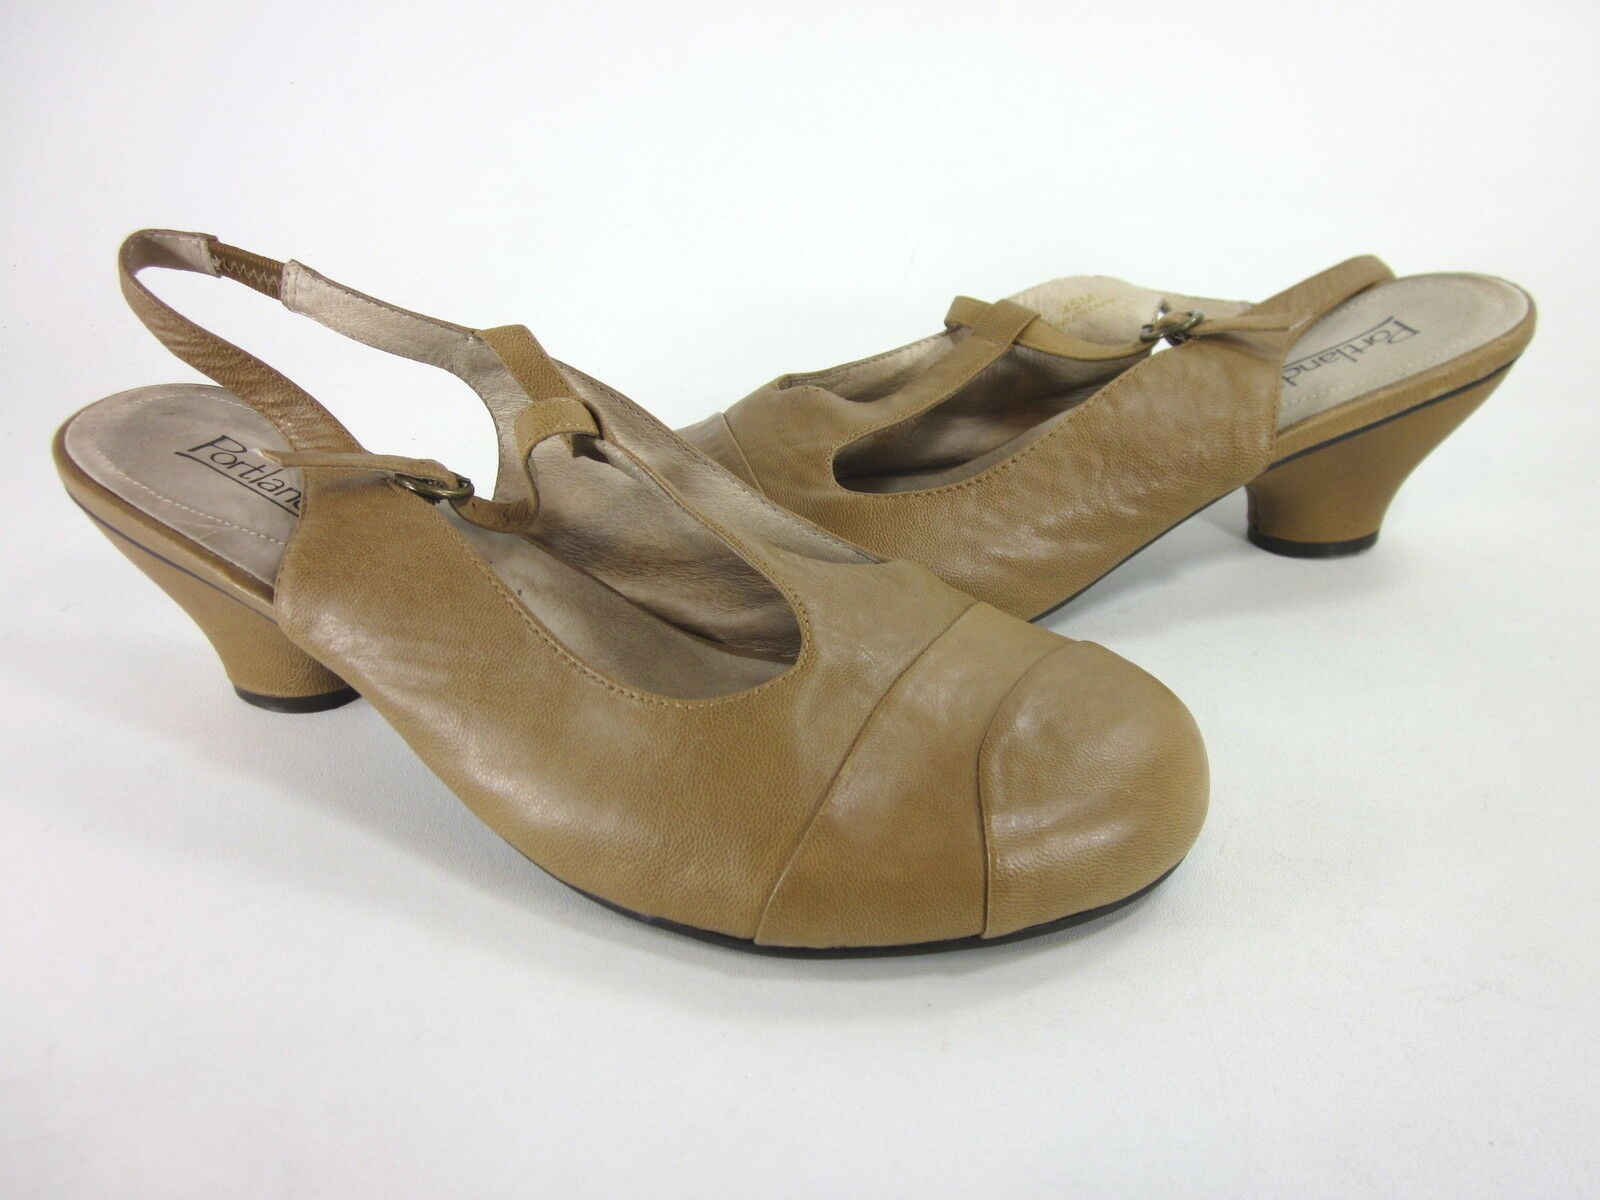 PORTLANDIA WOMEN'S BOLOGNA T-STRAP PUMP TAN LEATHER EUR EUR EUR SIZE 45 US 13 MEDIUM d08fe1